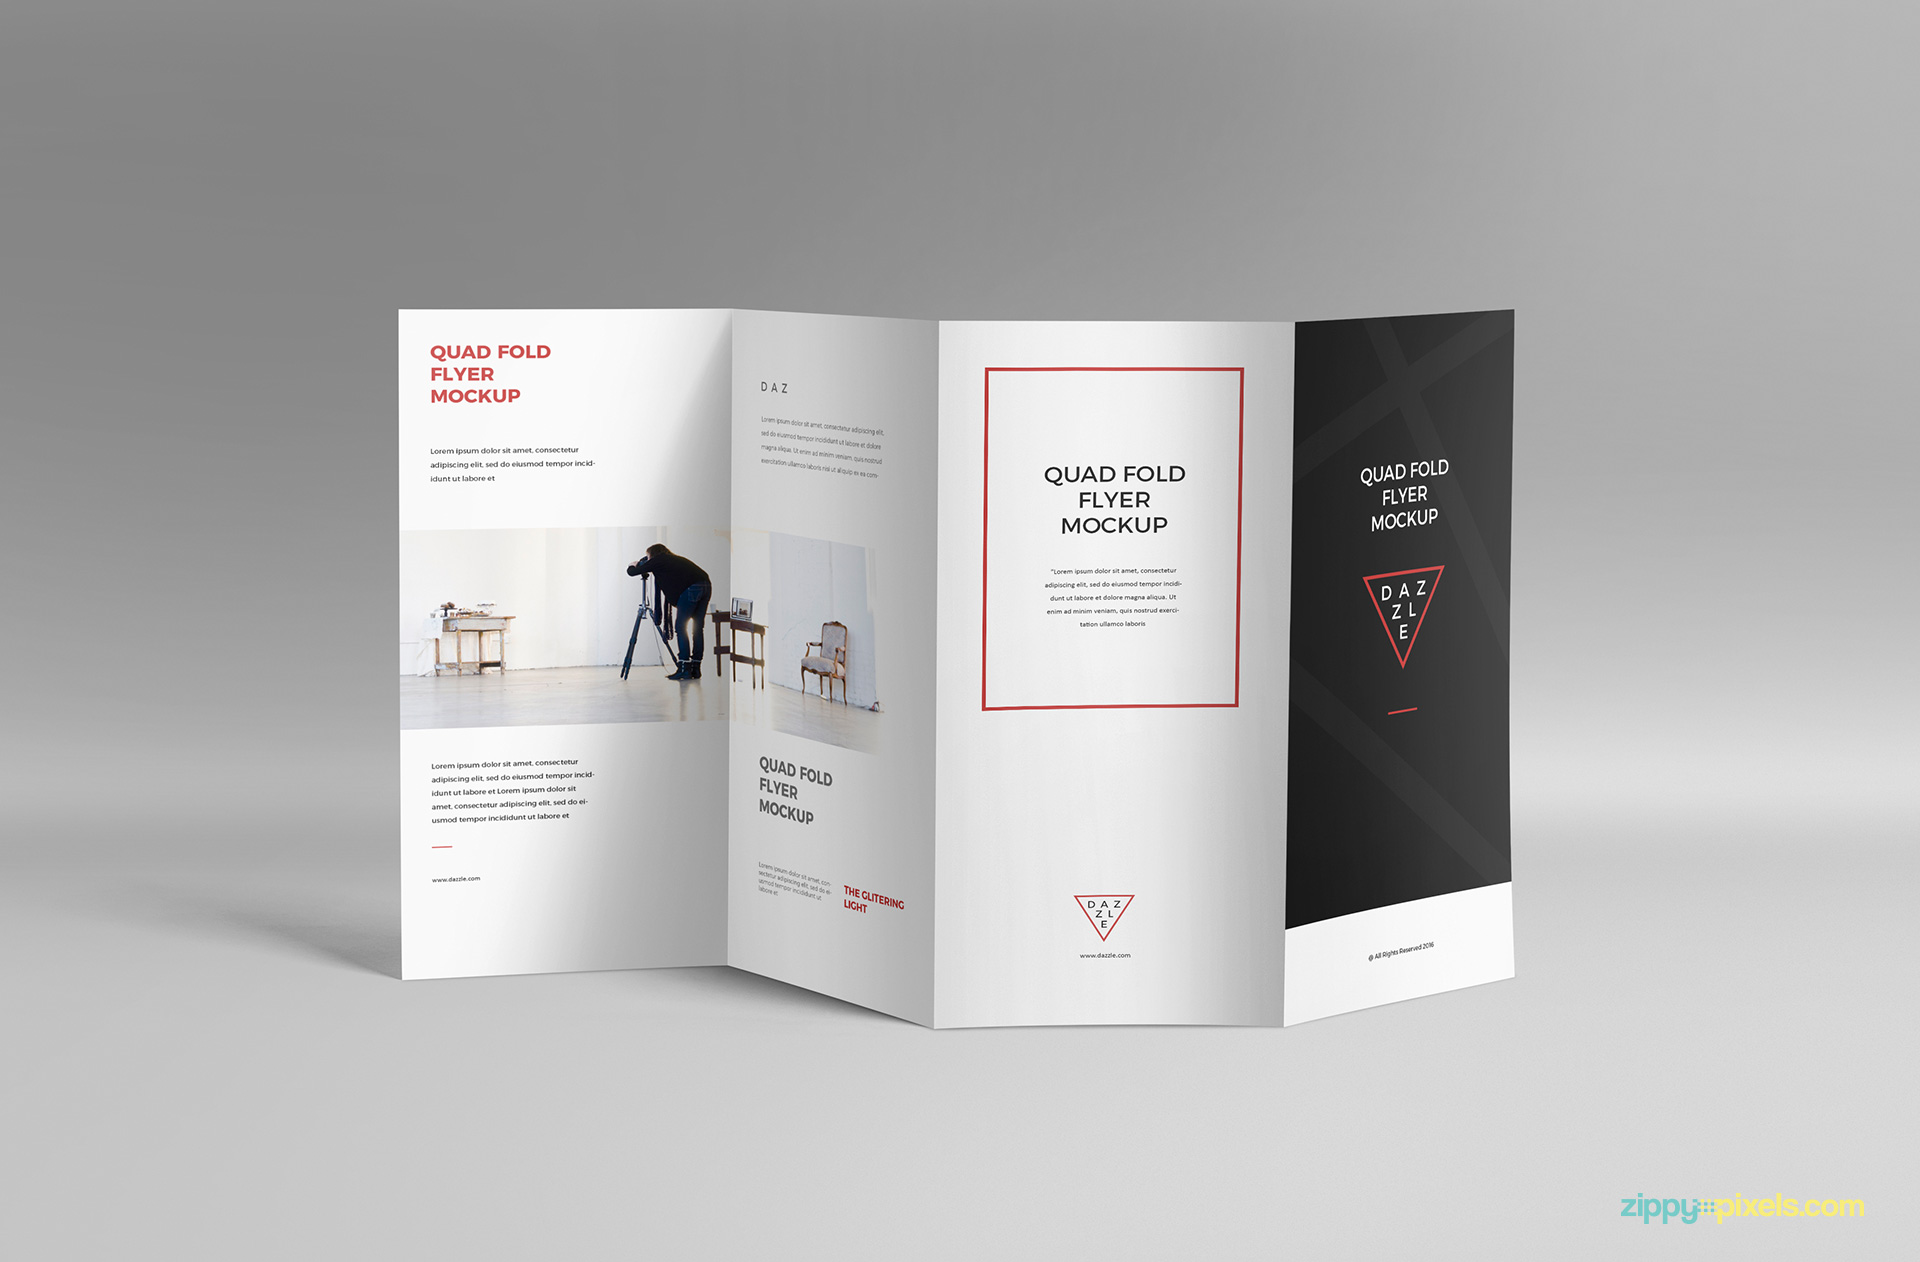 PSD of the 4 Fold Brochure Mockup.